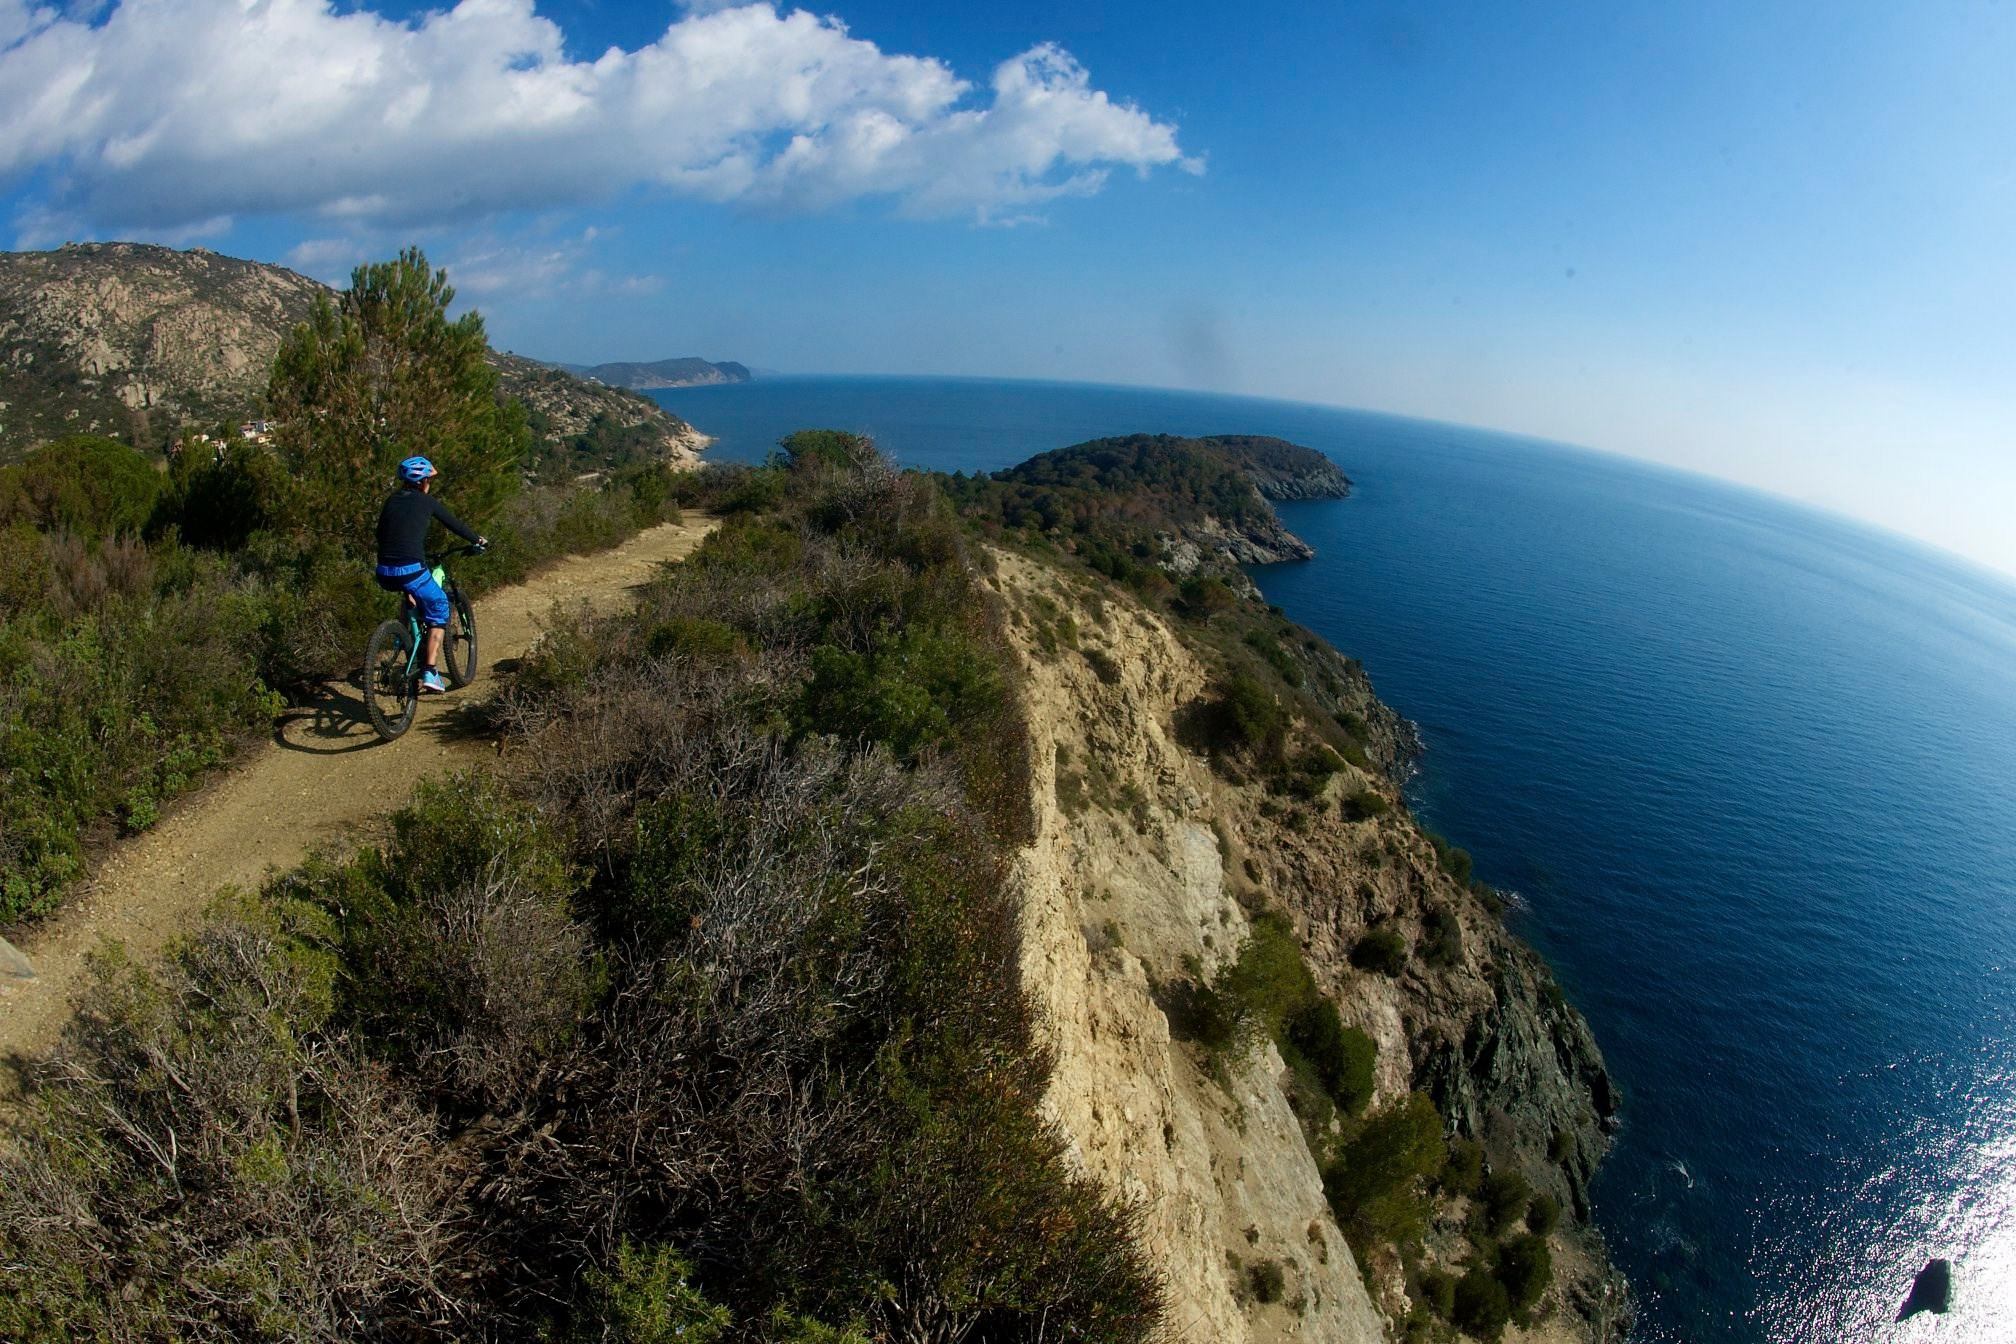 Vacanze dove? All'Elba in mtb!